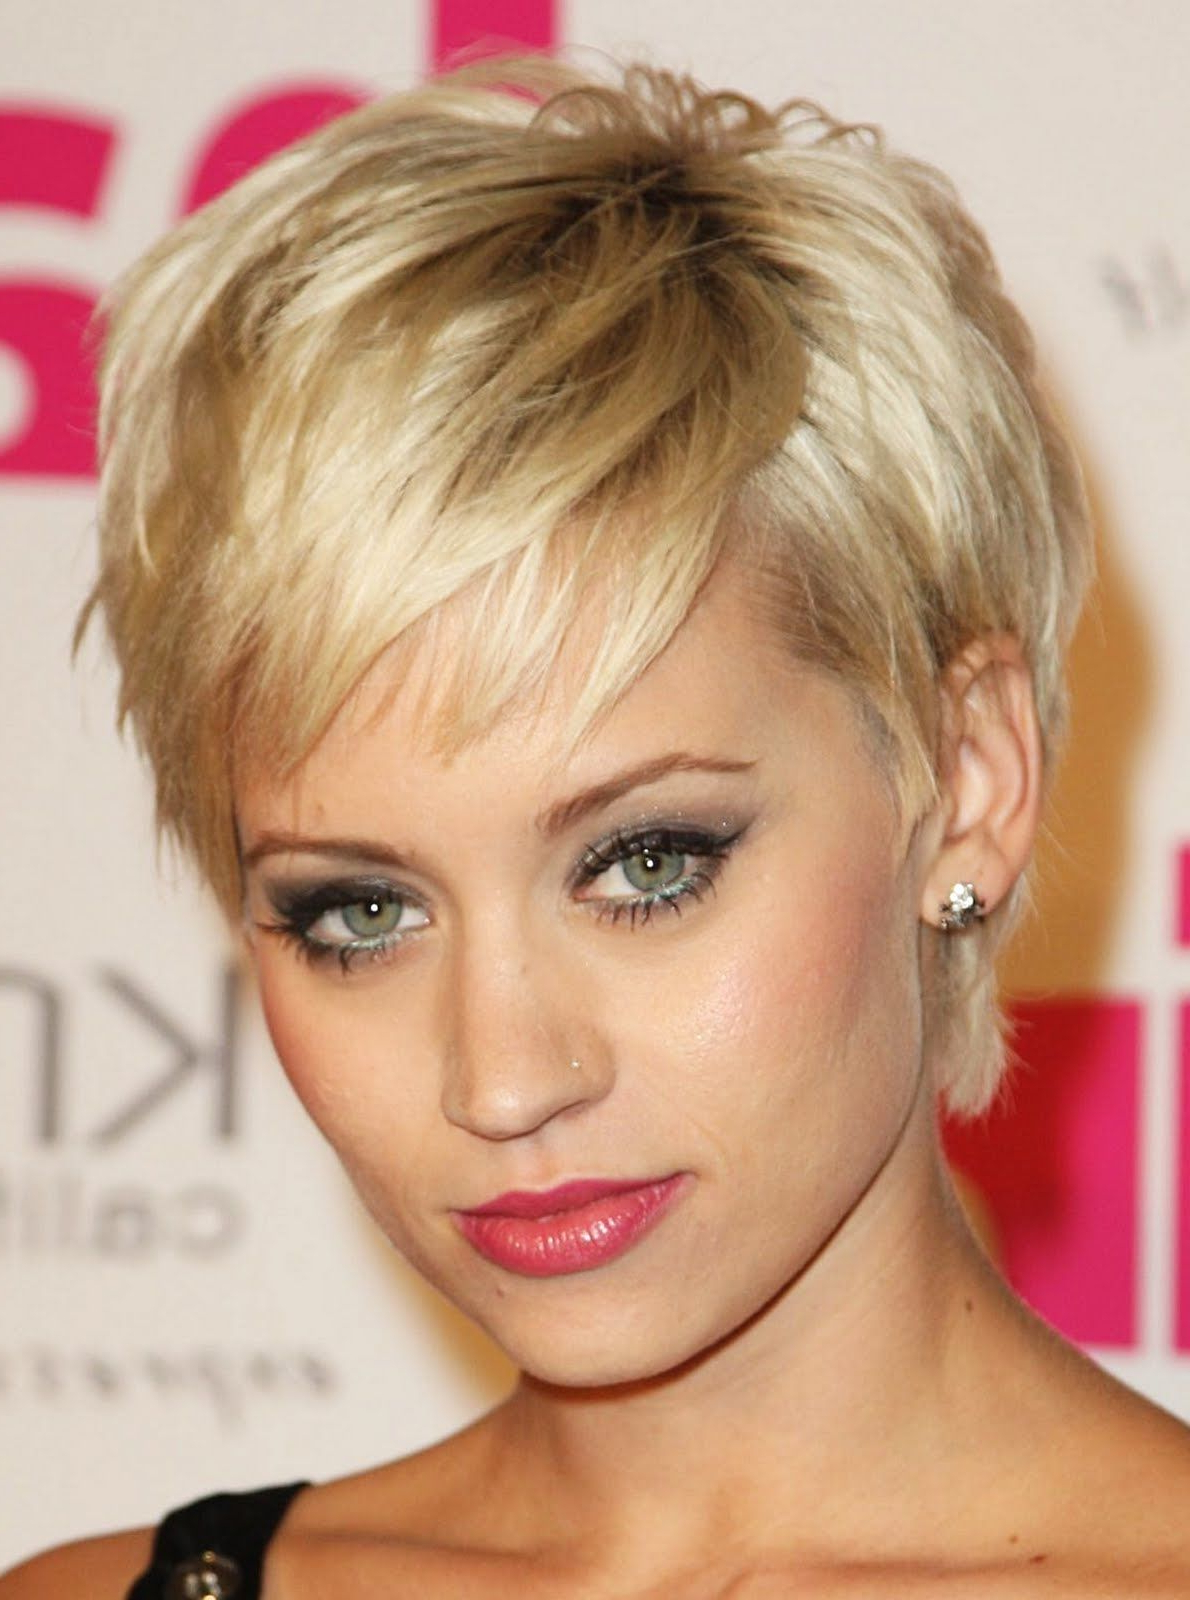 Short Hairstyles For Oval Faces | Hair Cut | Pinterest | Short Hair With Short Haircuts For Fine Hair Oval Face (View 1 of 25)